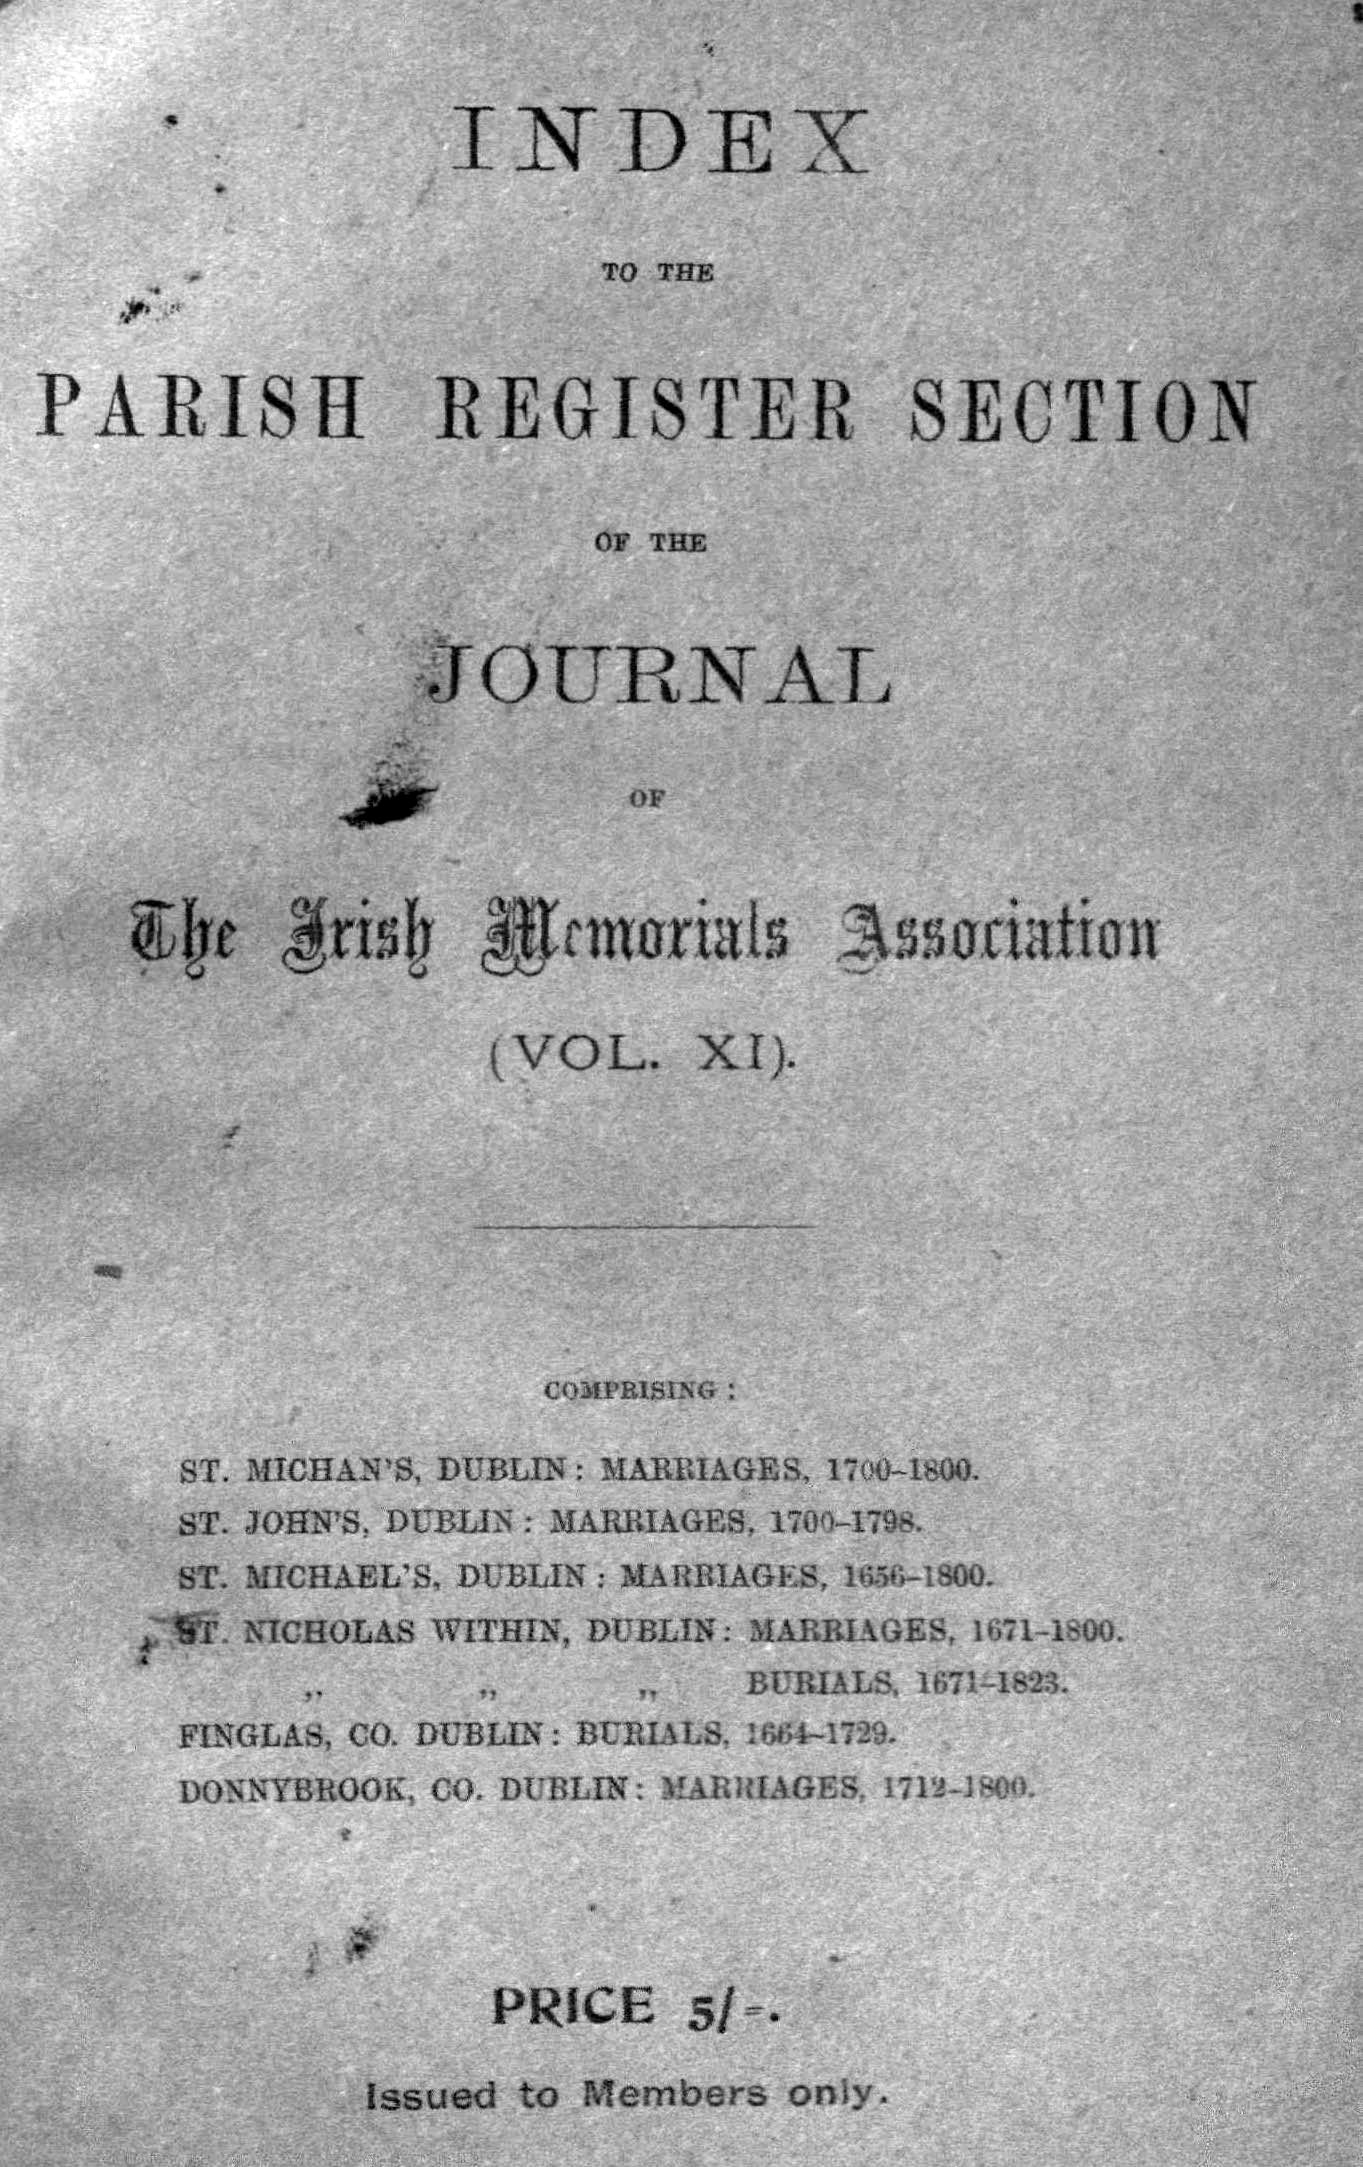 photo of Journal of the Association for the Preservation of the Memorials of the Dead. Volume XI, for the years 1921-1925. Index to the Parish Register Section. 1926